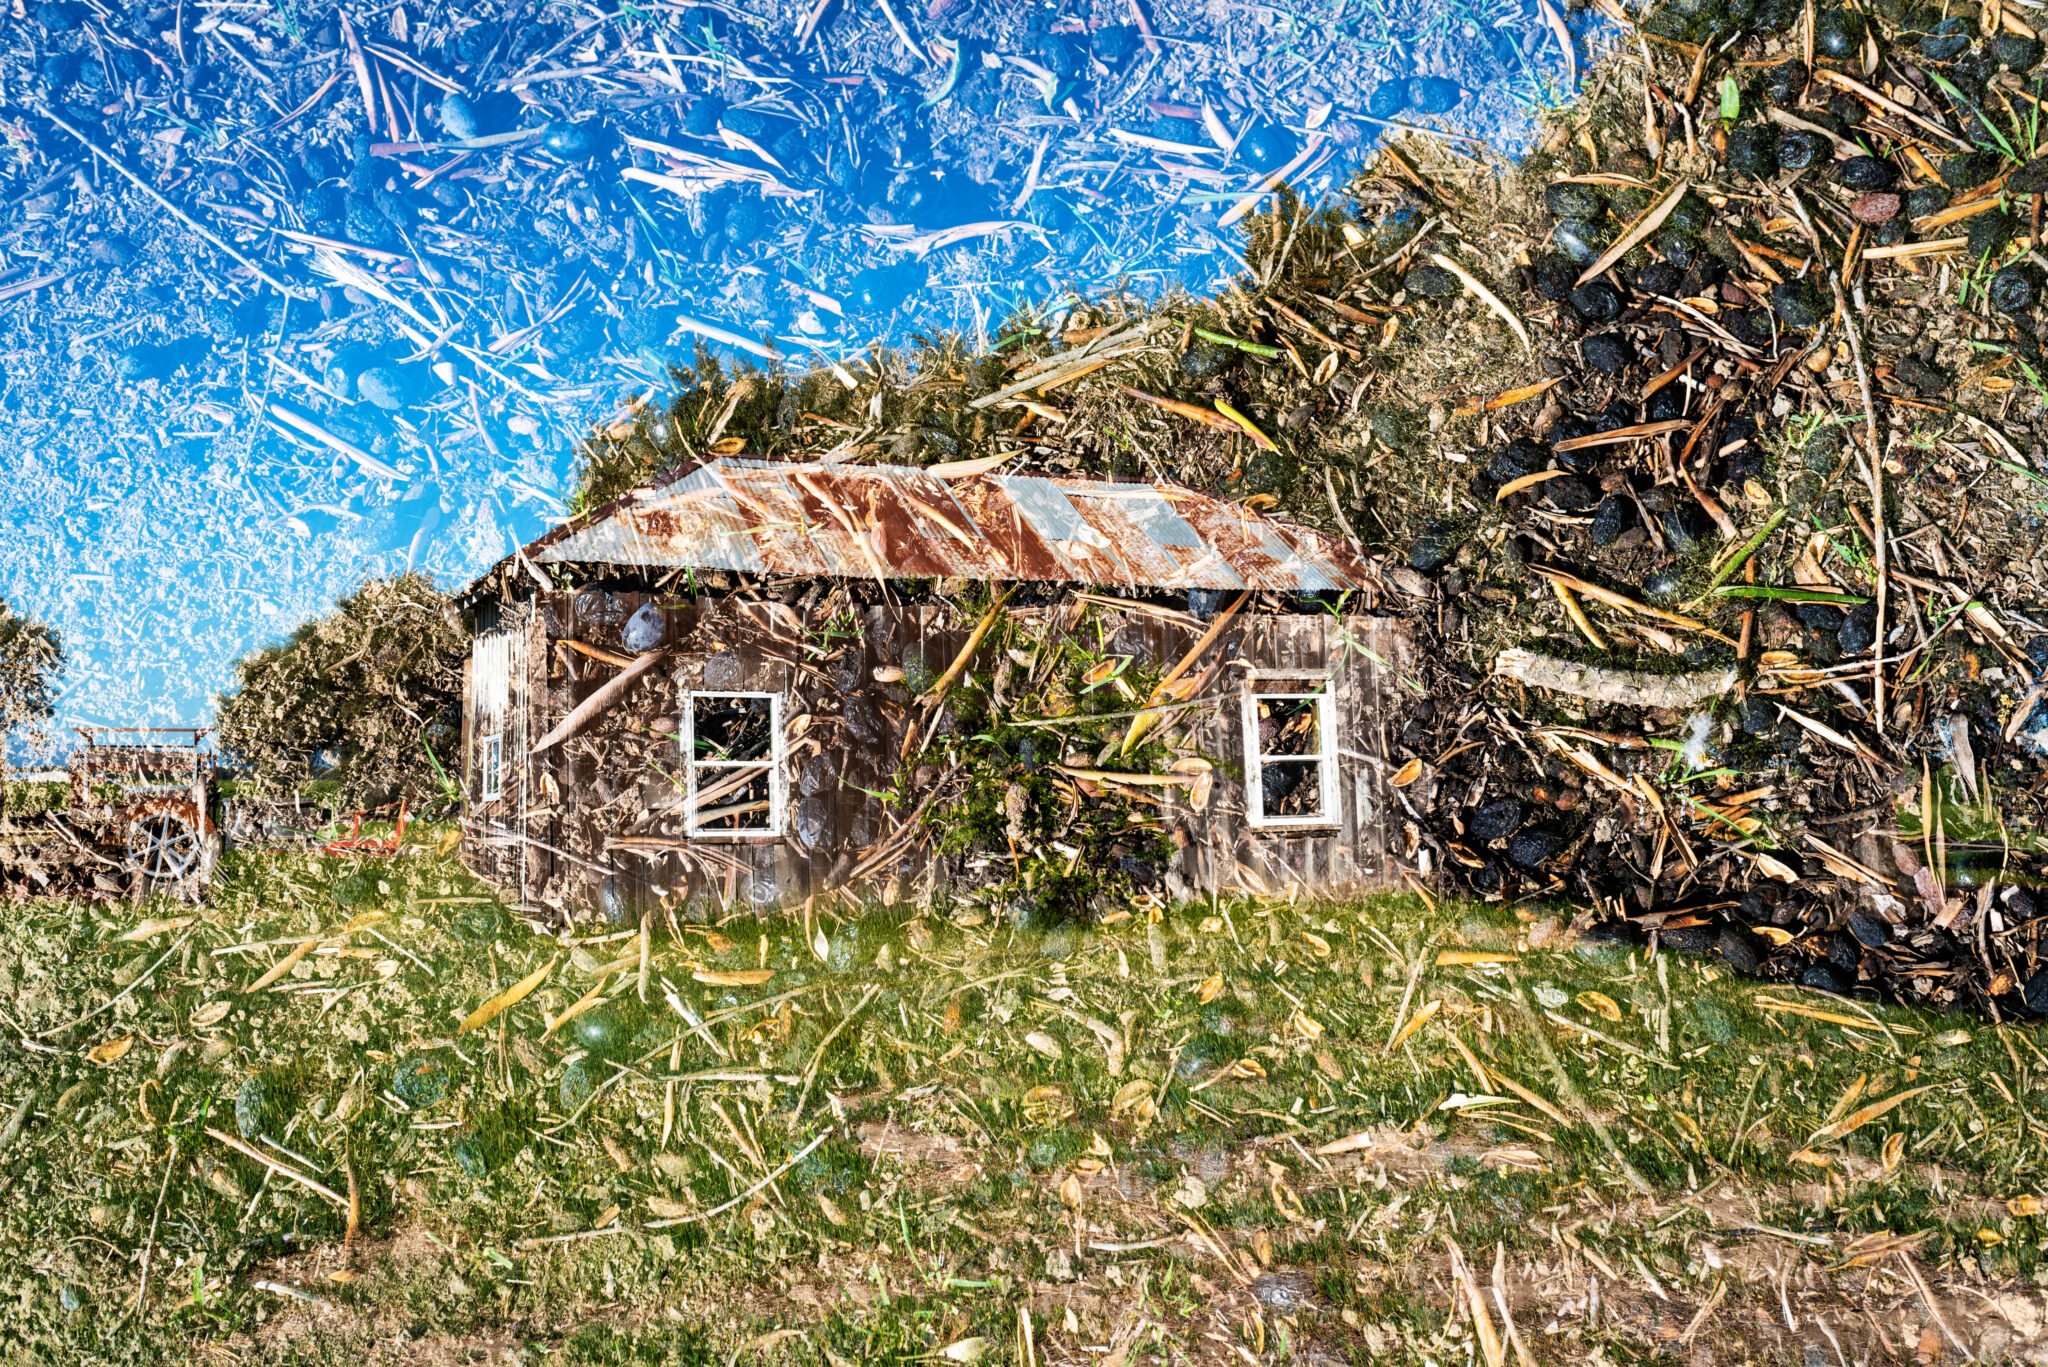 outbuilding, rusty roof, olives, multiple exposure, farm, yolo county, central valley, woodland, california, agriculture, historic